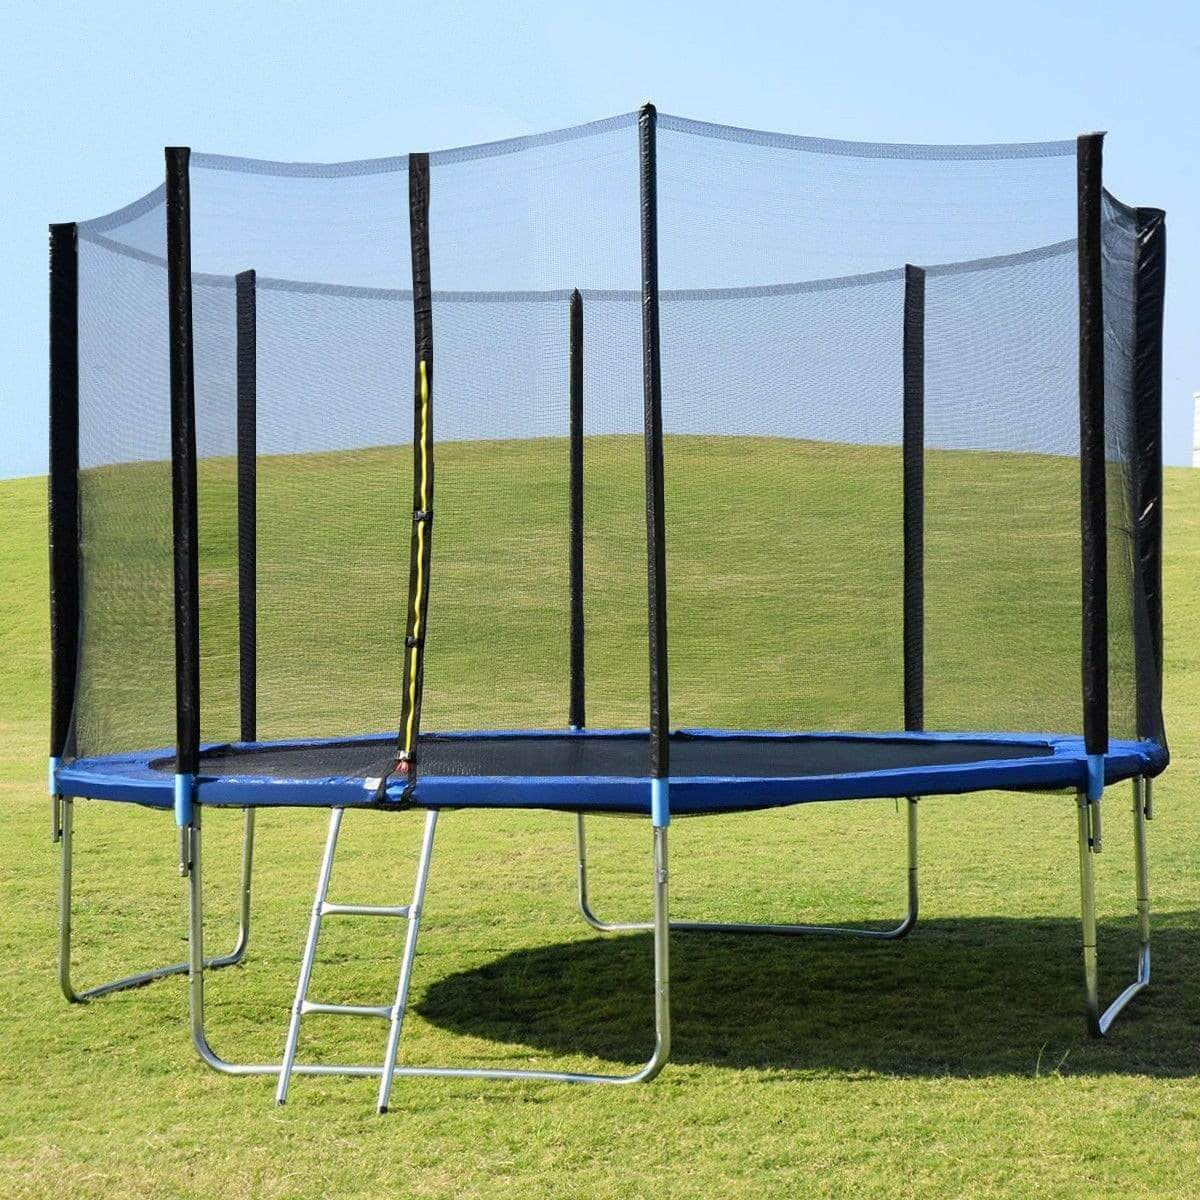 14' Trampoline Combo - Safety Enclosure Net Spring Pad & Ladder